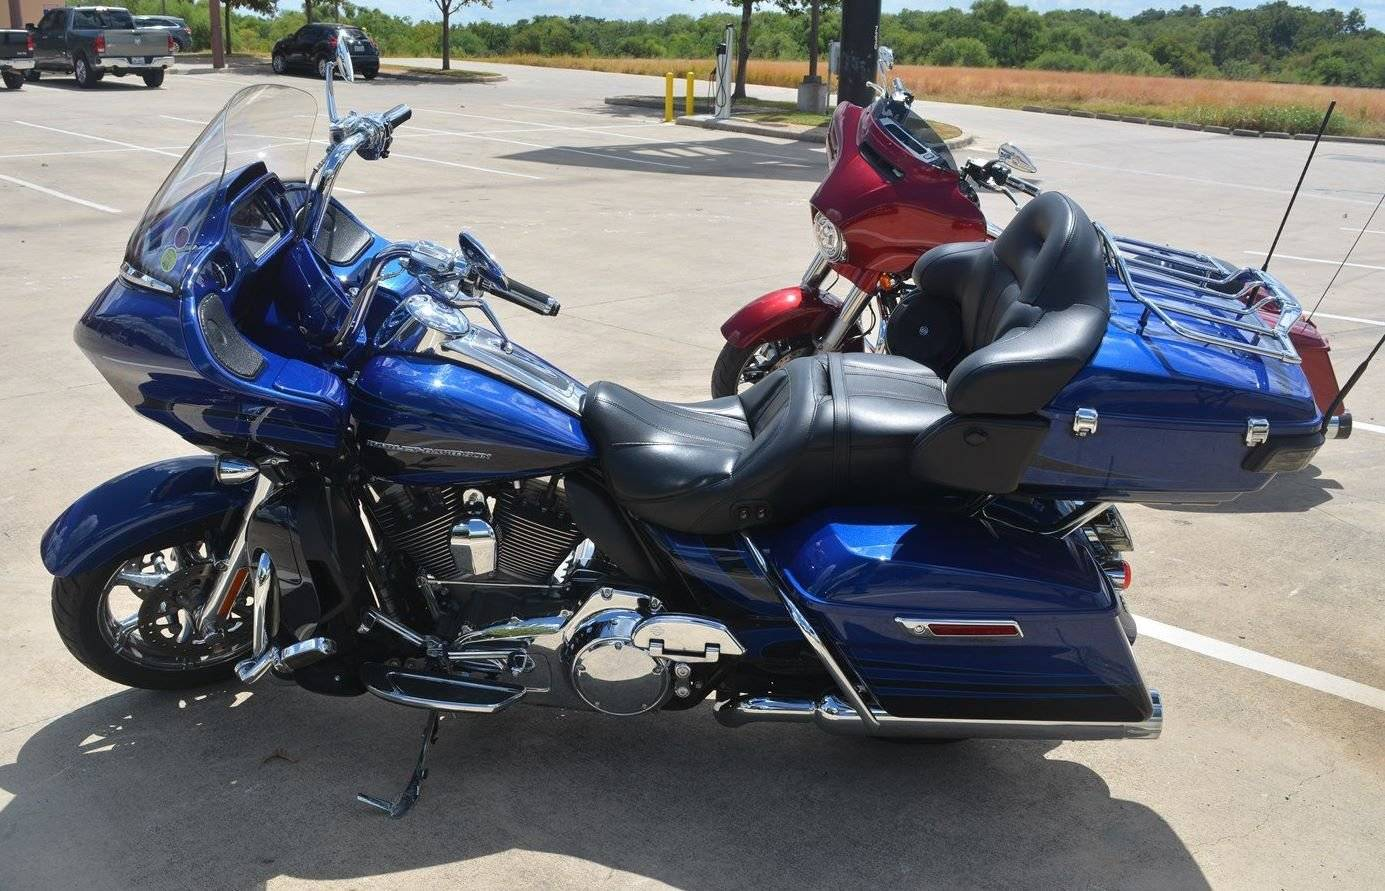 2015 Harley-Davidson CVO Road Glide Ultra in San Antonio, Texas - Photo 6